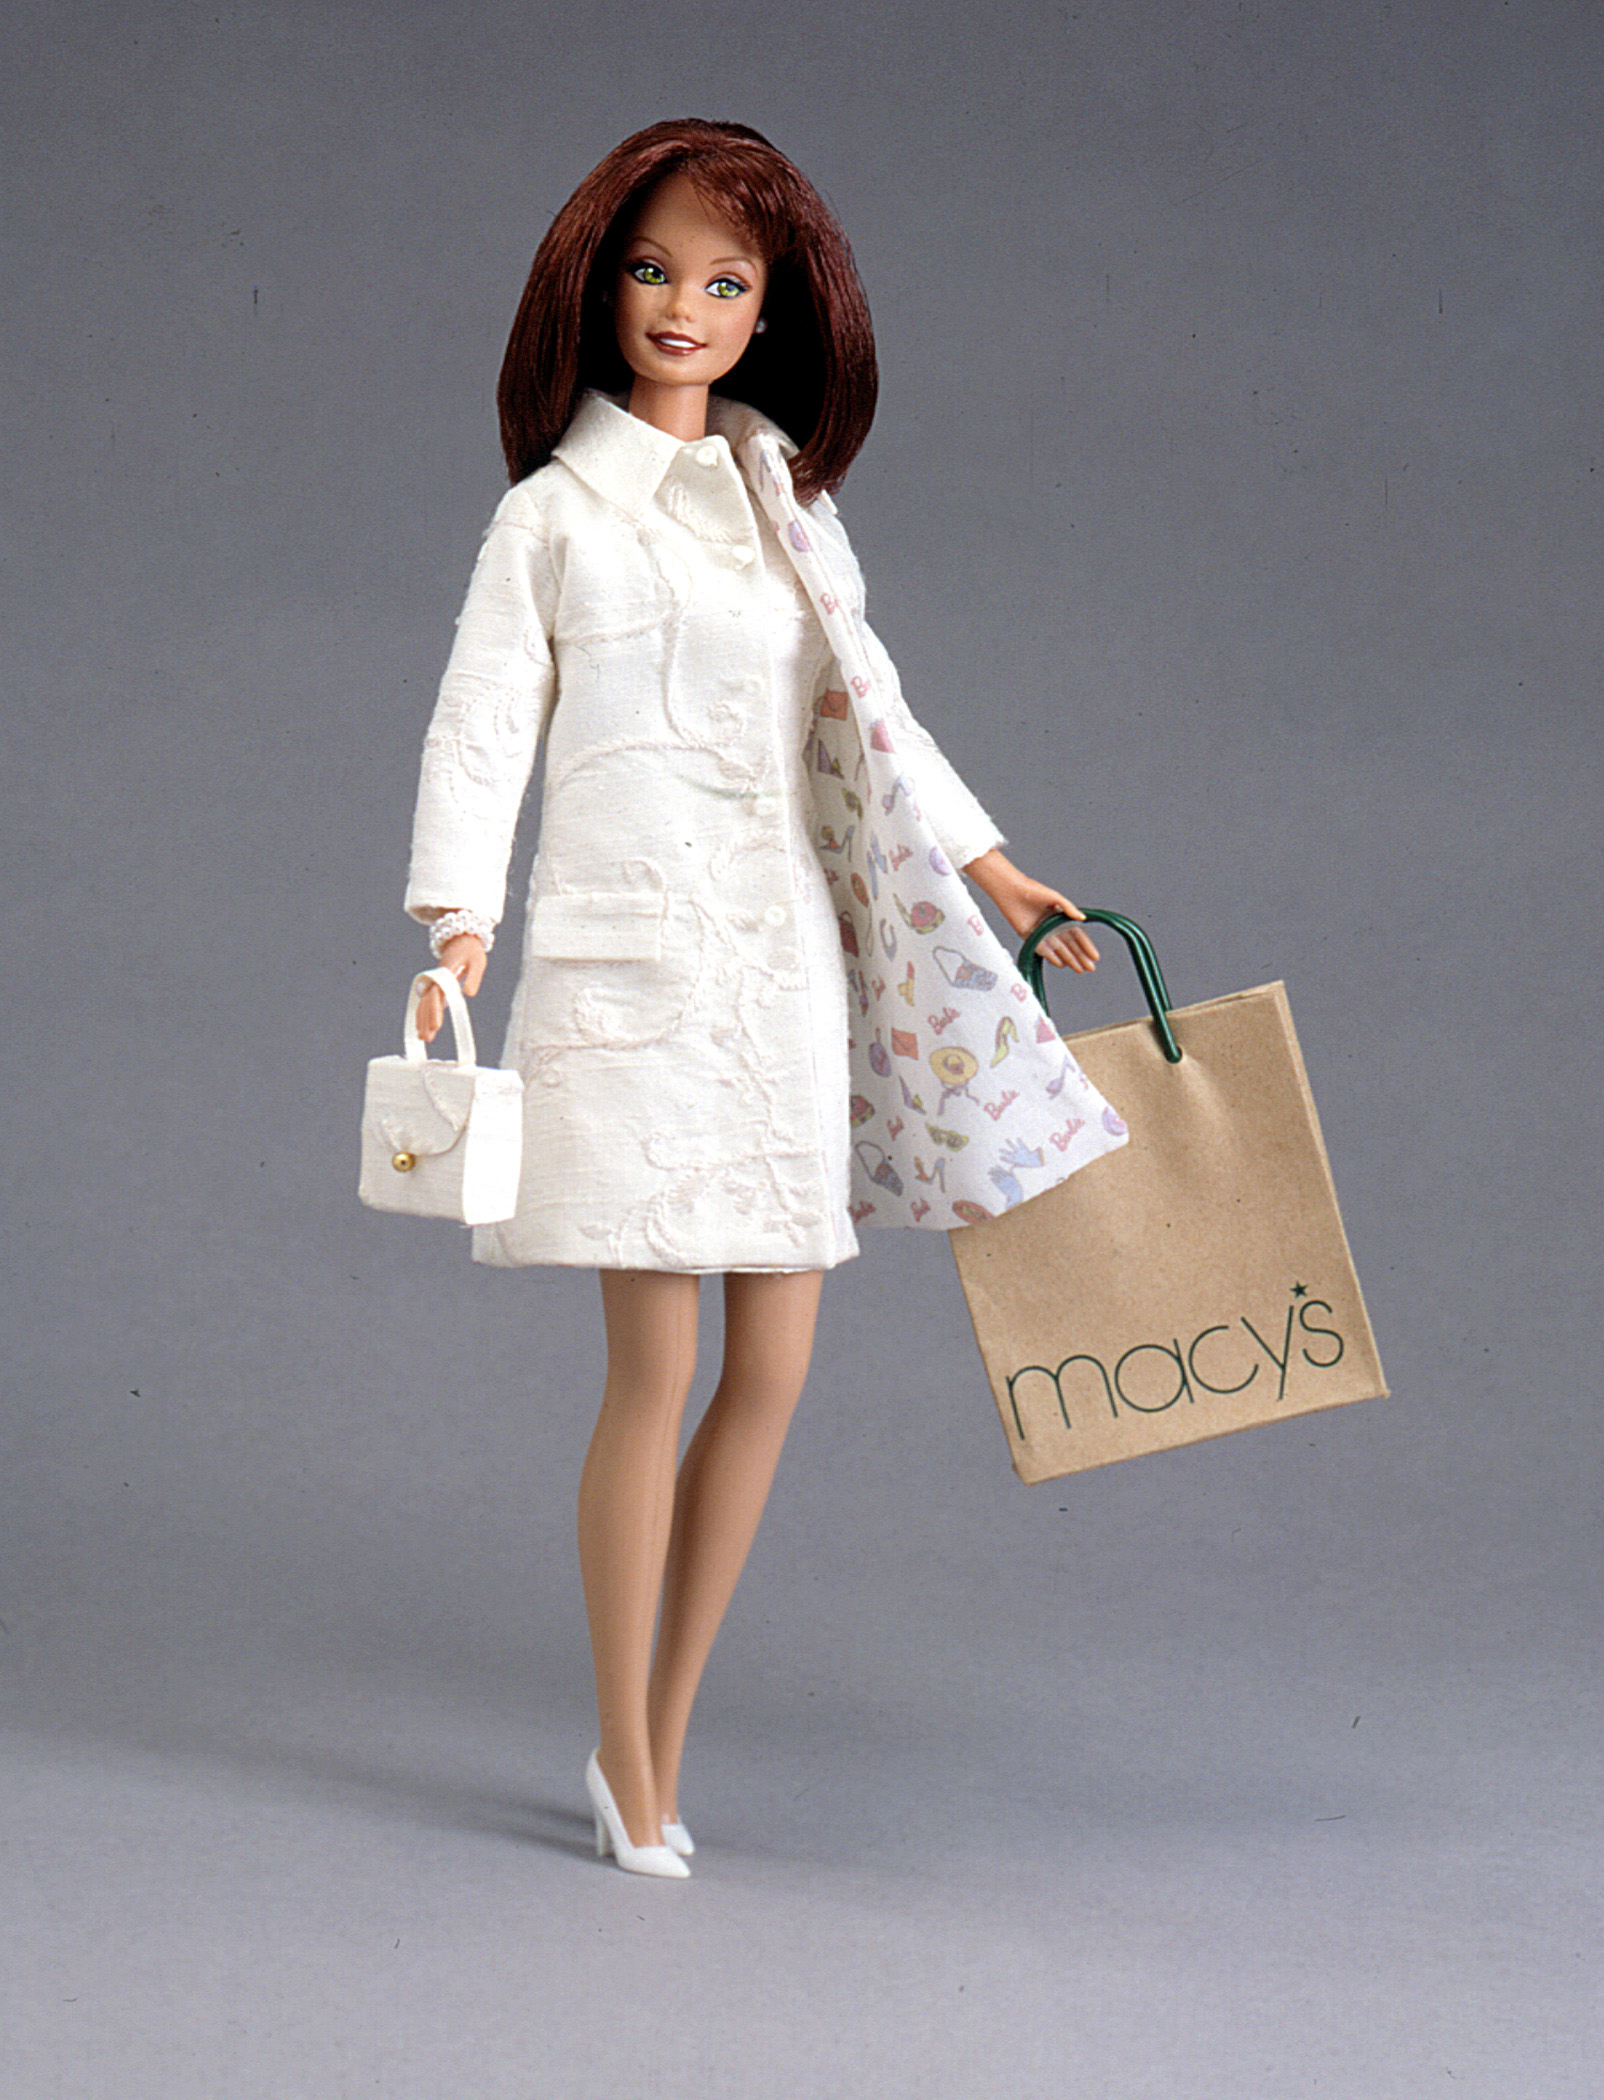 The Nicole Miller Barbie Doll, released in 1996.